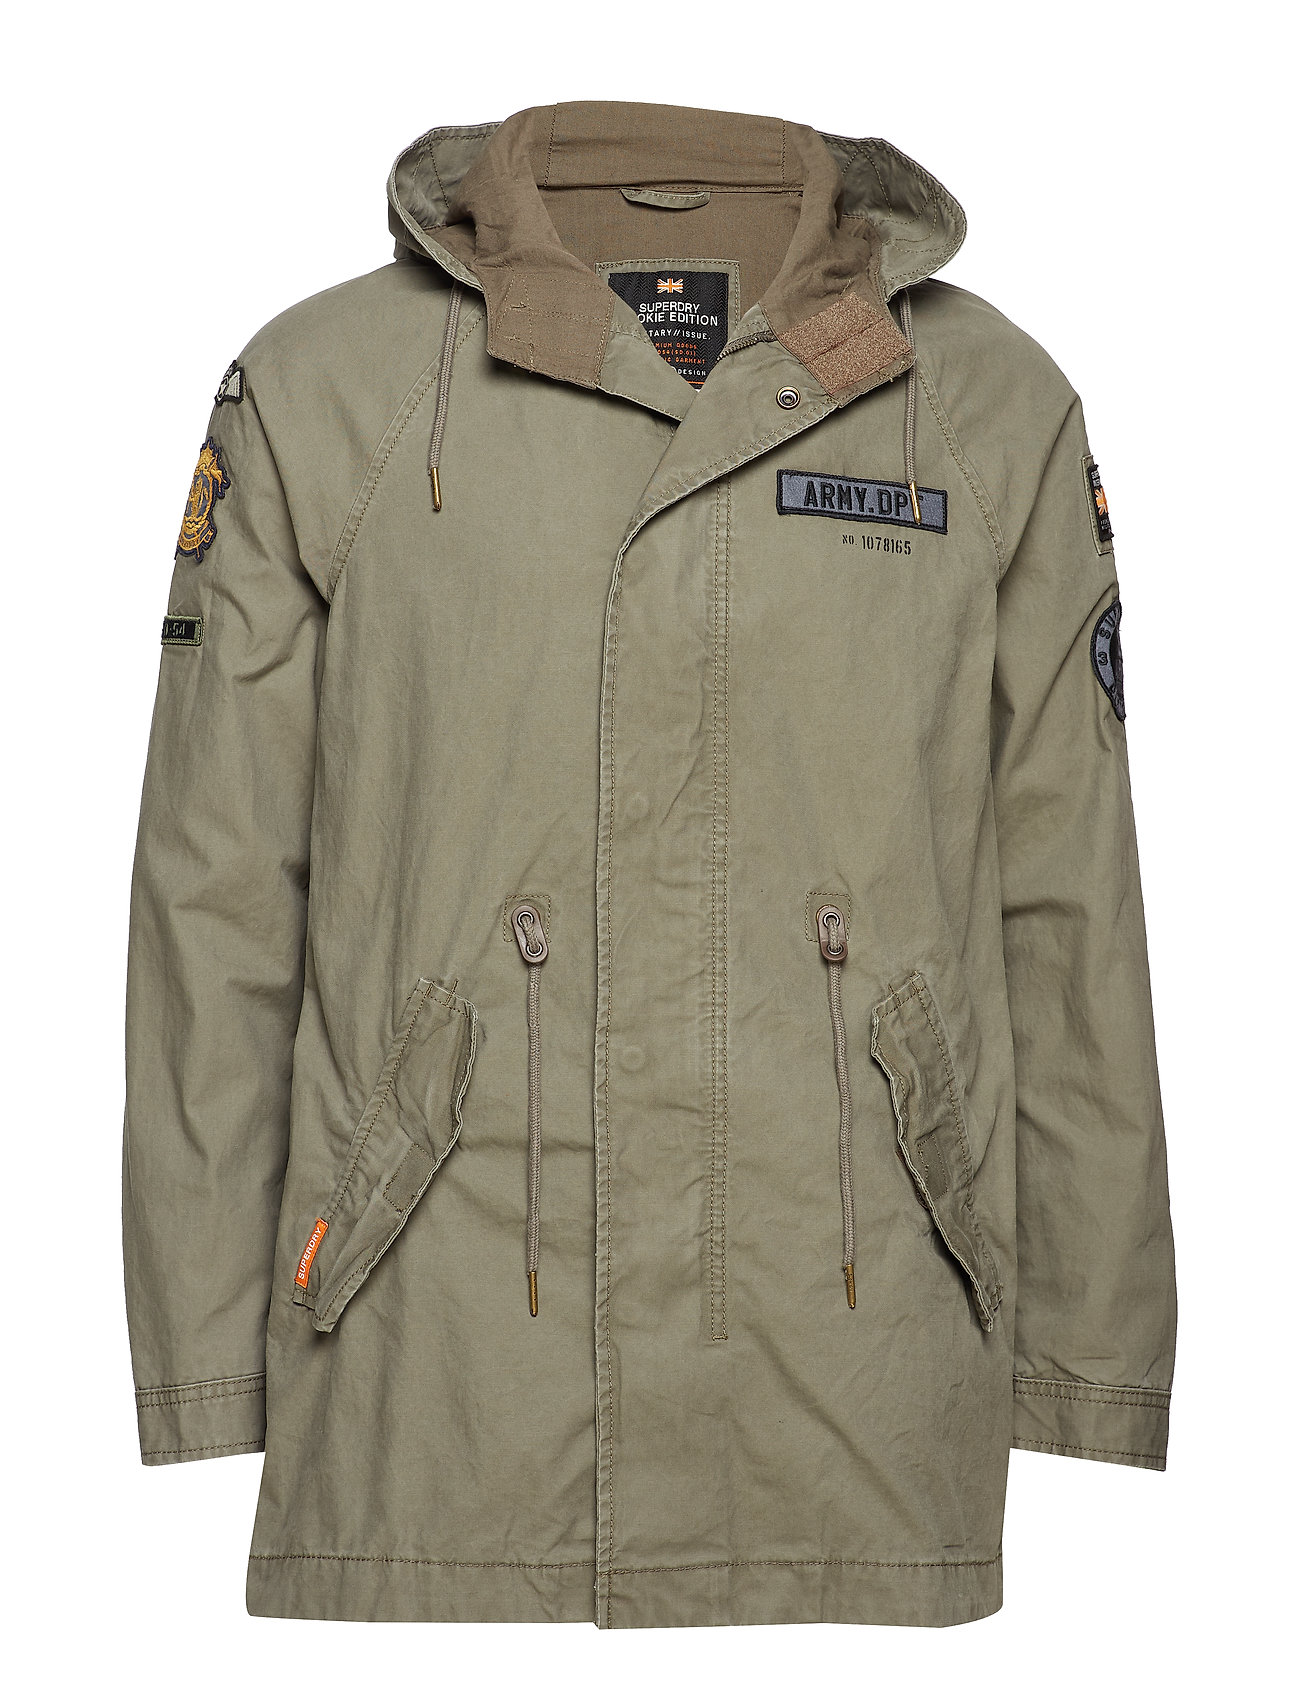 Superdry ROOKIE AVIATOR PATCHED PARKA - AGED OLIVE